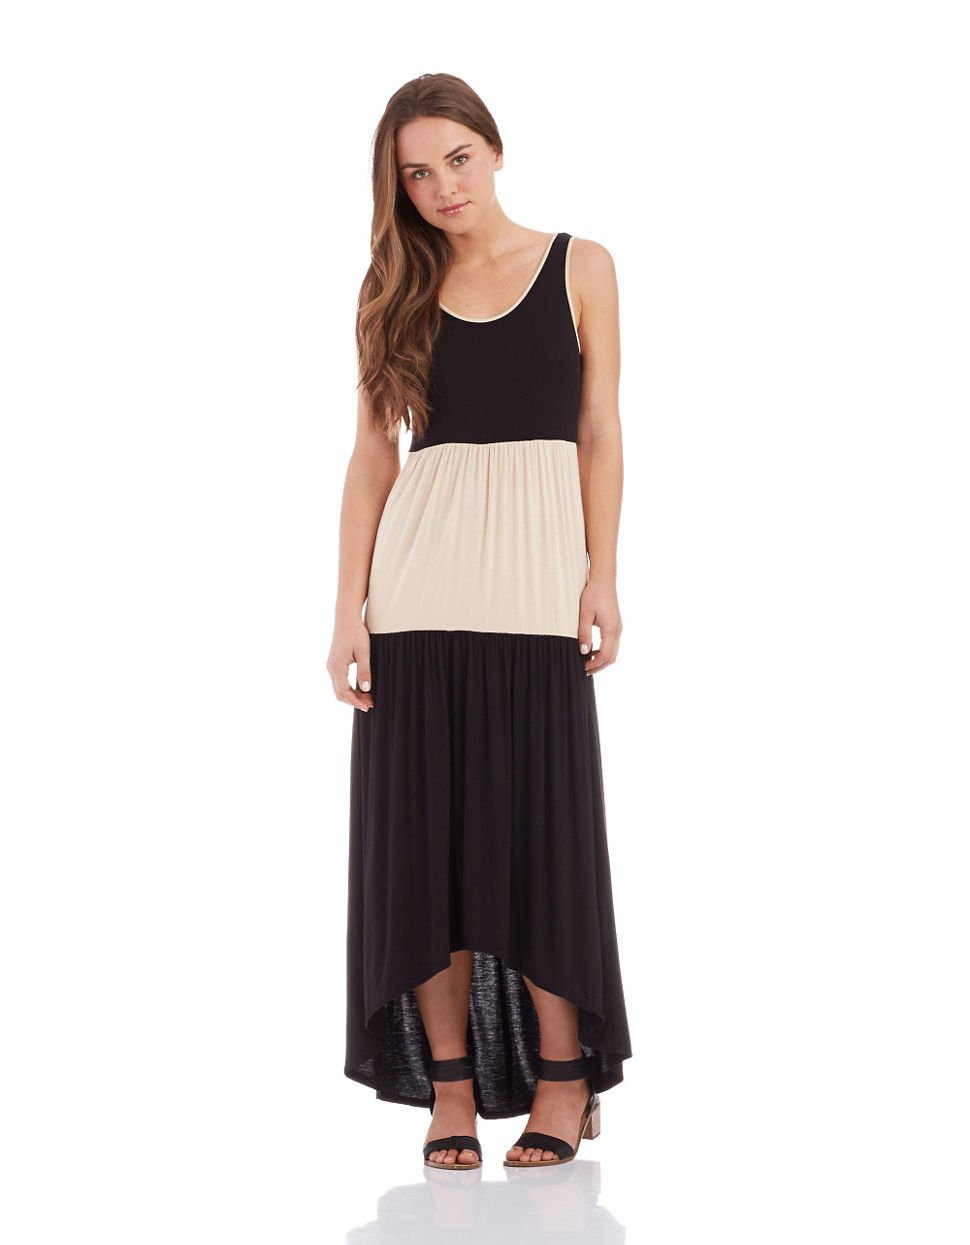 Colorblock maxi dress forever 21